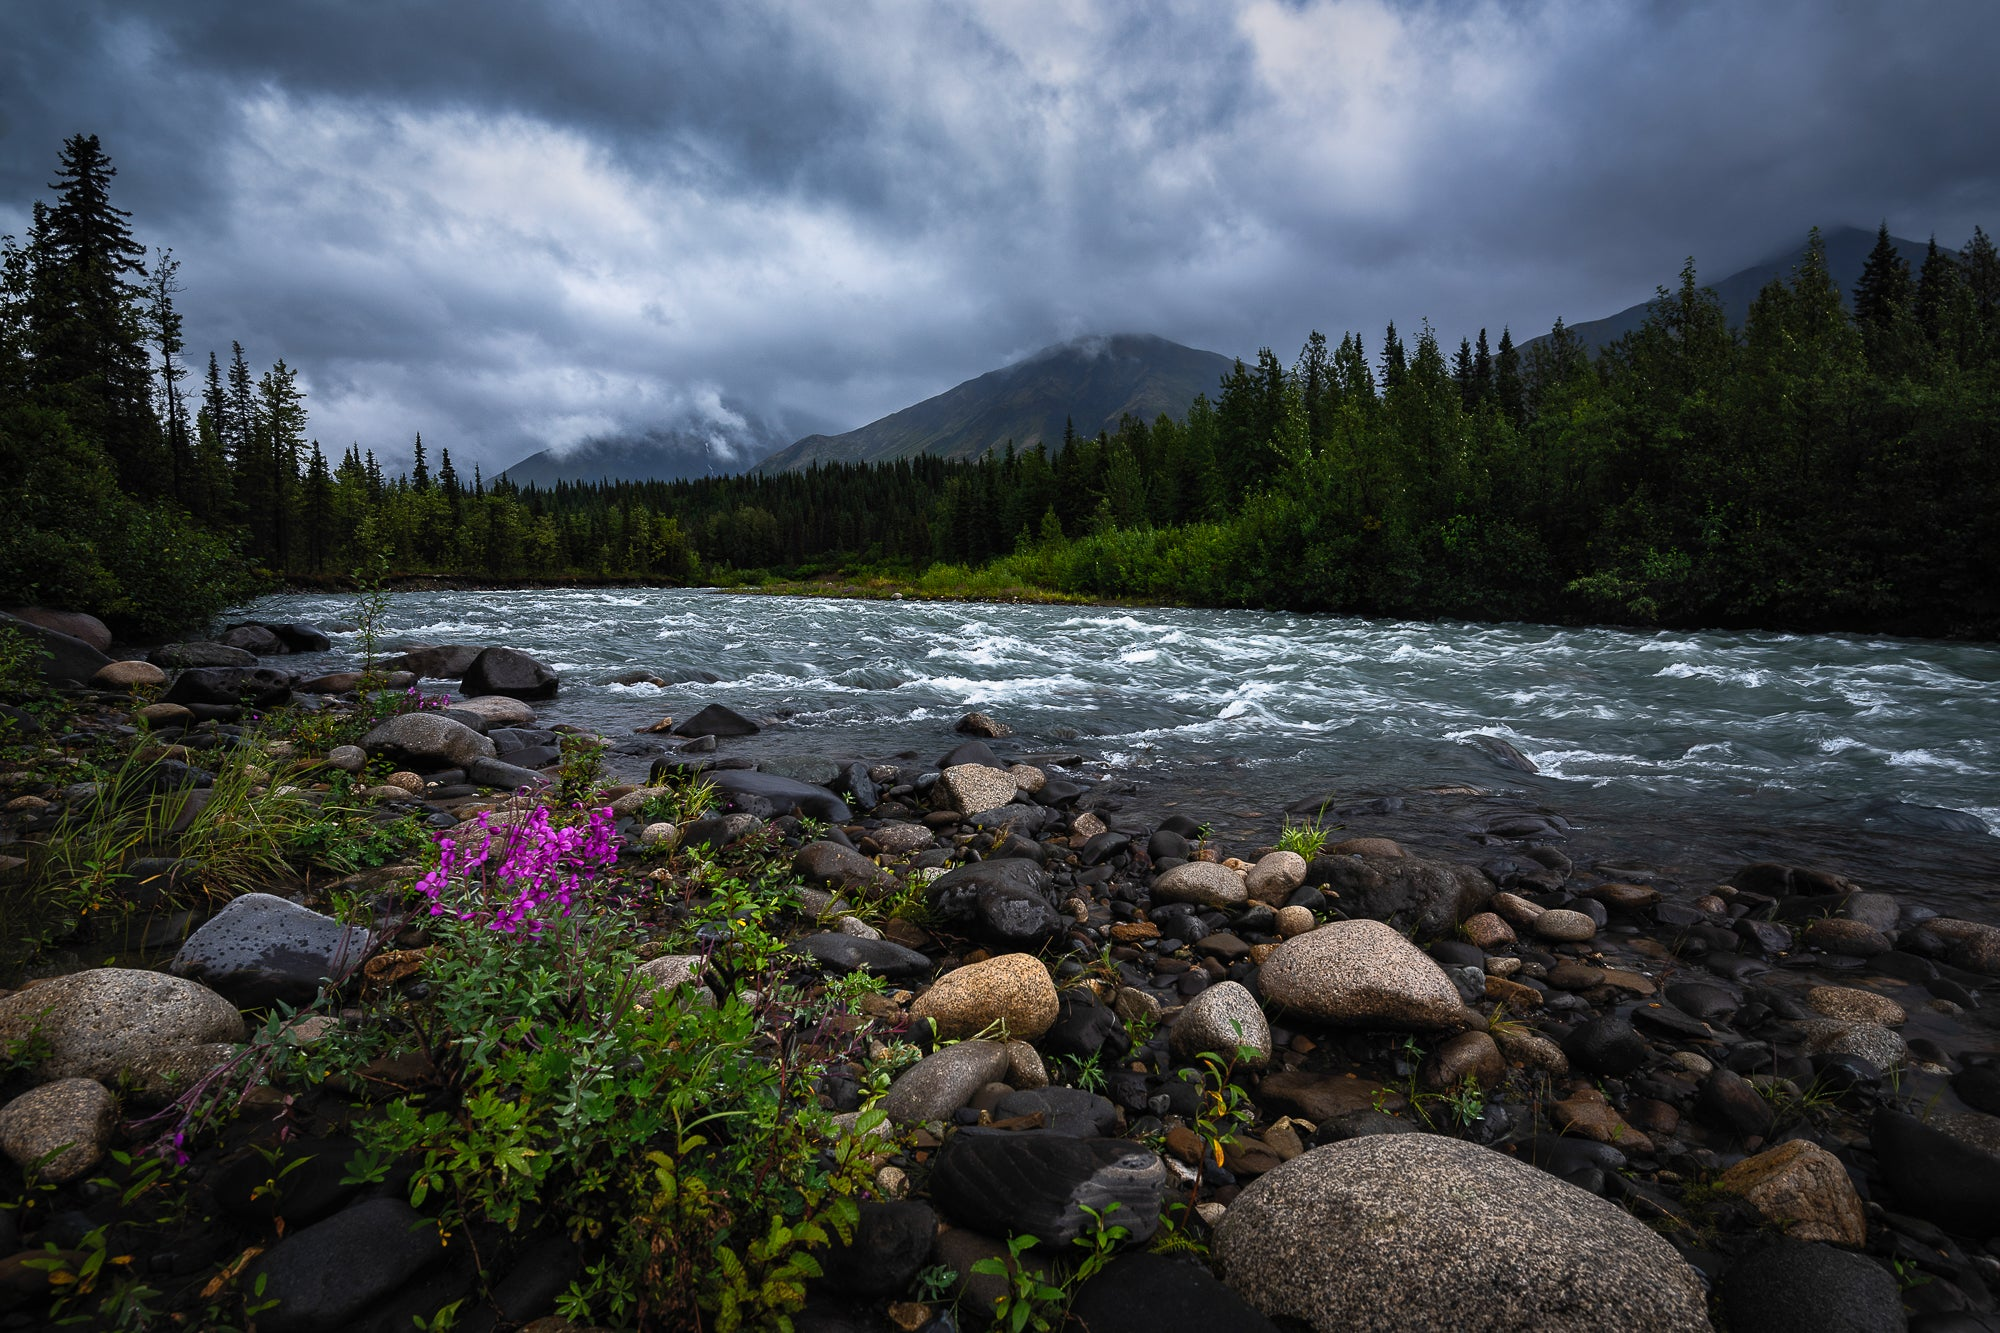 River-Trees-Moody-Clouds-Mountains-Alaska-USA-Mark-Hannah-Photography